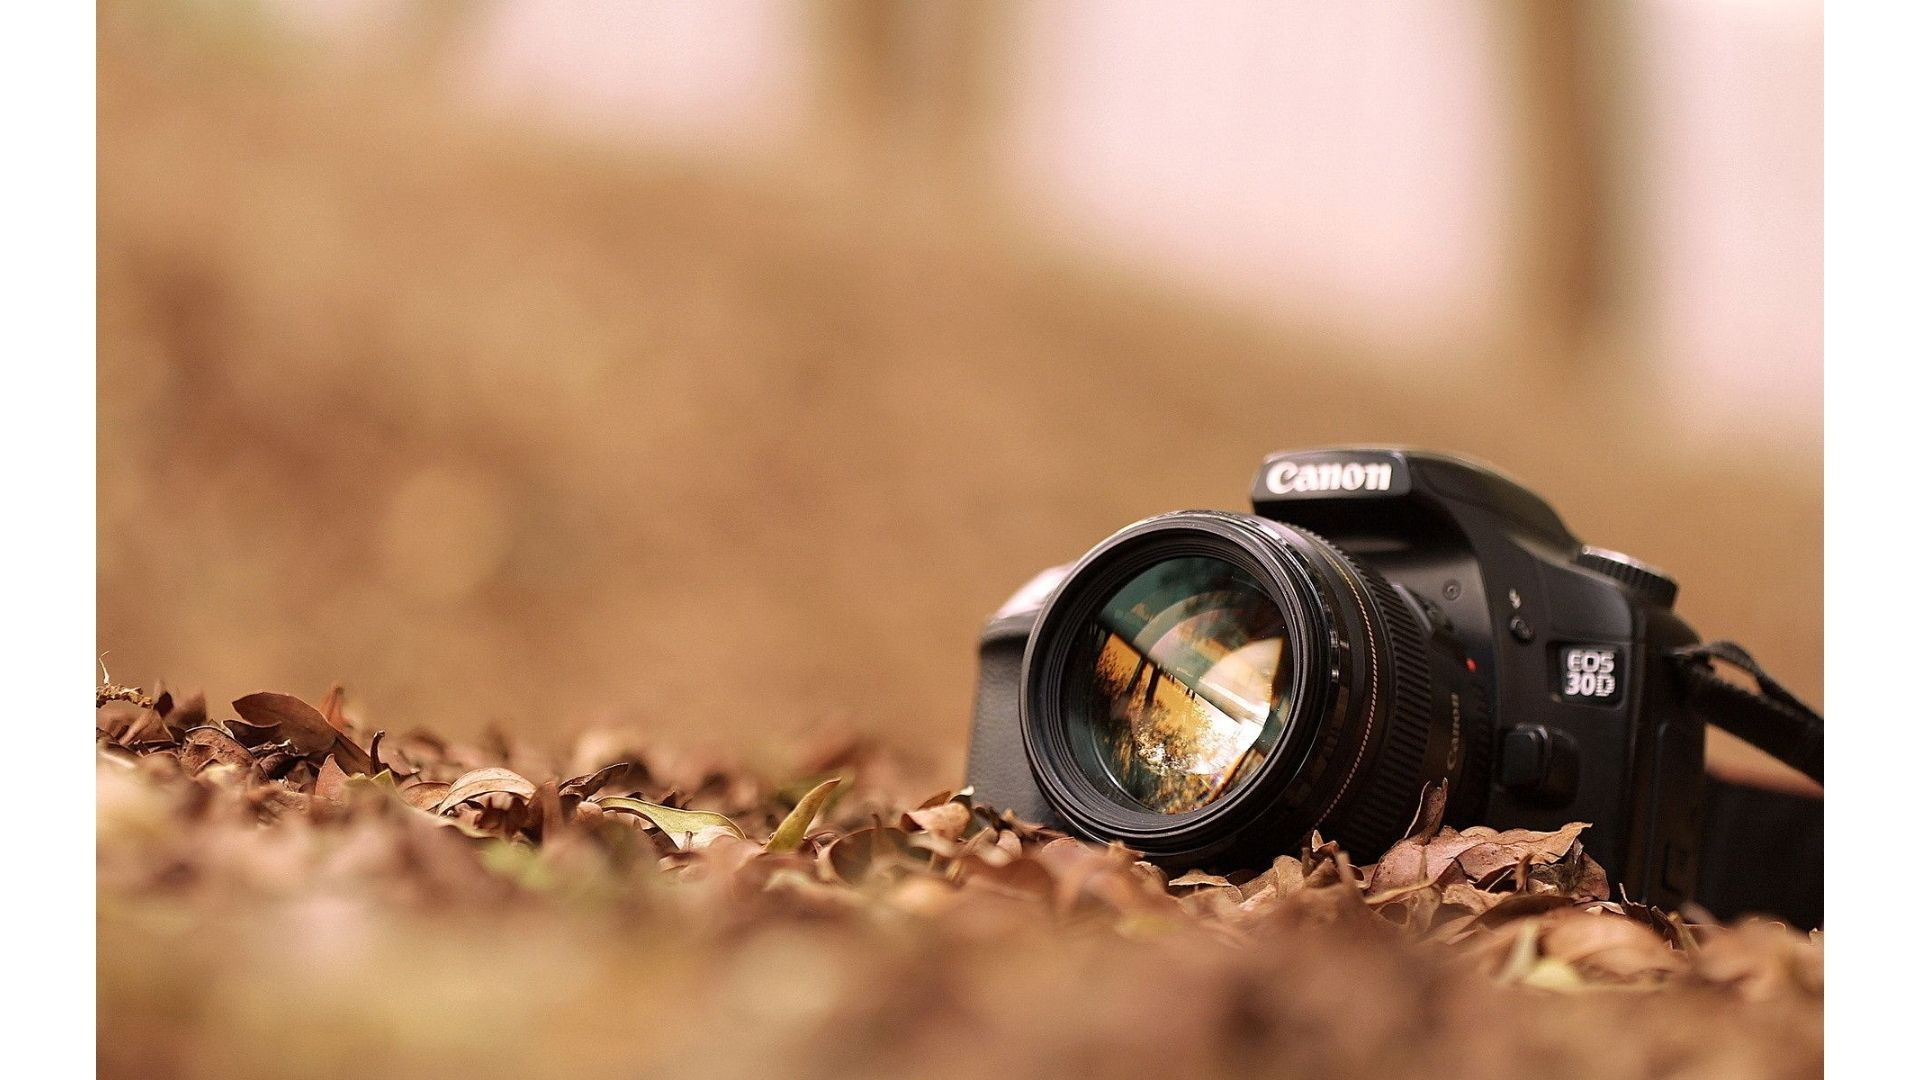 Best Tips And Tricks For Creative Photography Photography Wallpaper Camera Wallpaper Photography